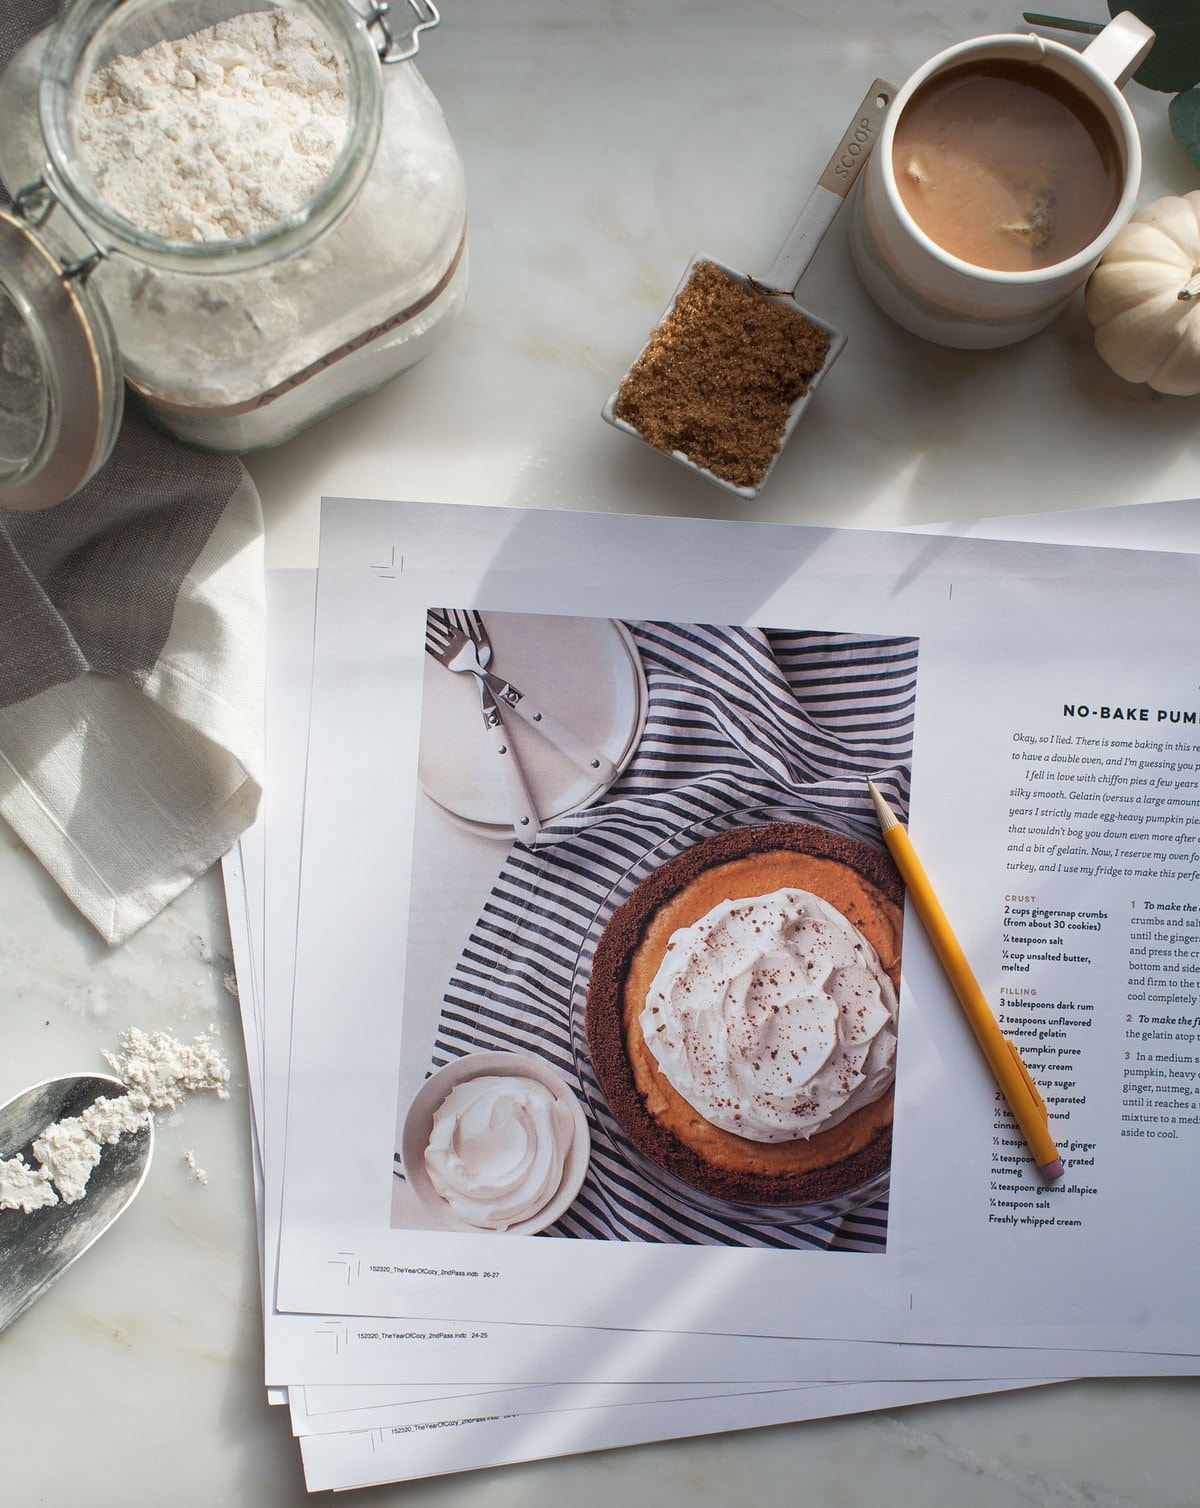 The Year of Cozy: How to Develop and Write a Recipe